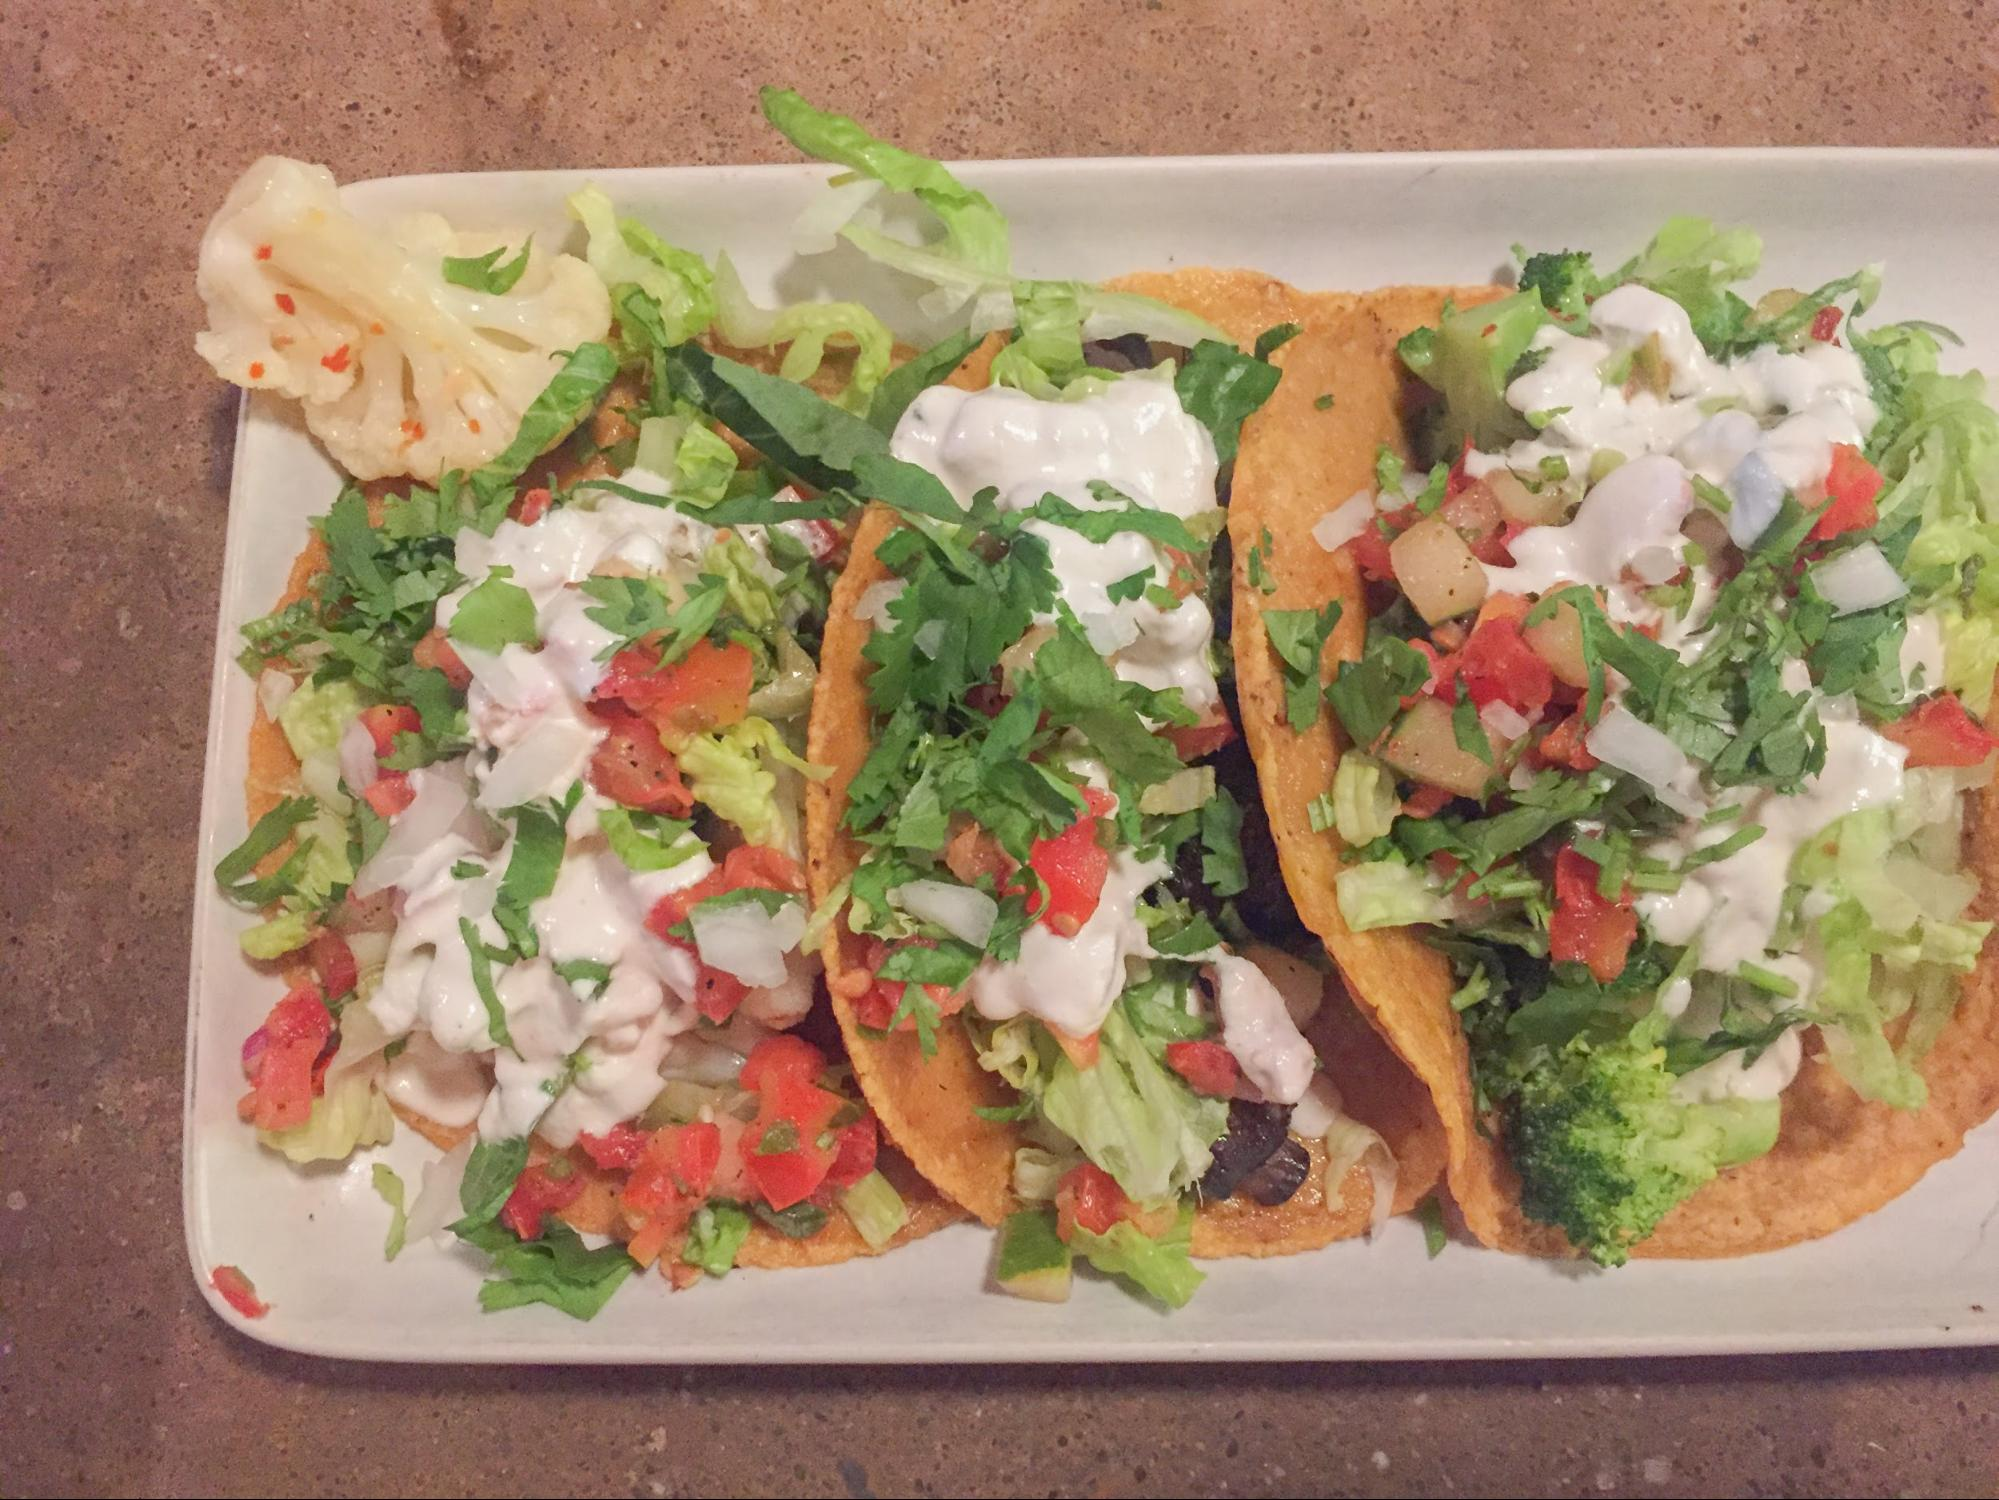 Vegan Tacos with Cashew Crema